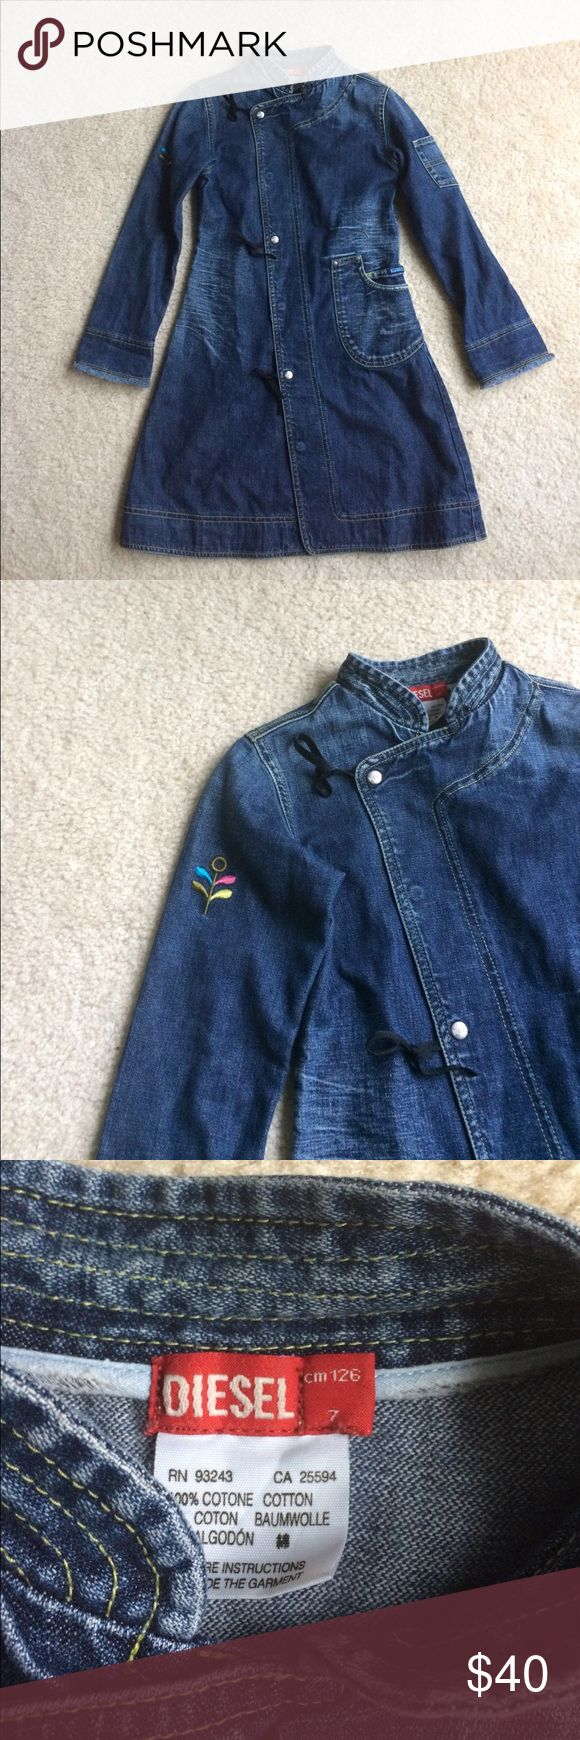 Girls Diesel denim jacket Girls Diesel jacket • denim material • long • frayed sleeve edge • distressed look • snap button closure • 3 decorative ribbon-tie • left side pocket • 10/10 excellent condition • fast same/next day shipping Diesel Jackets & Coats Jean Jackets